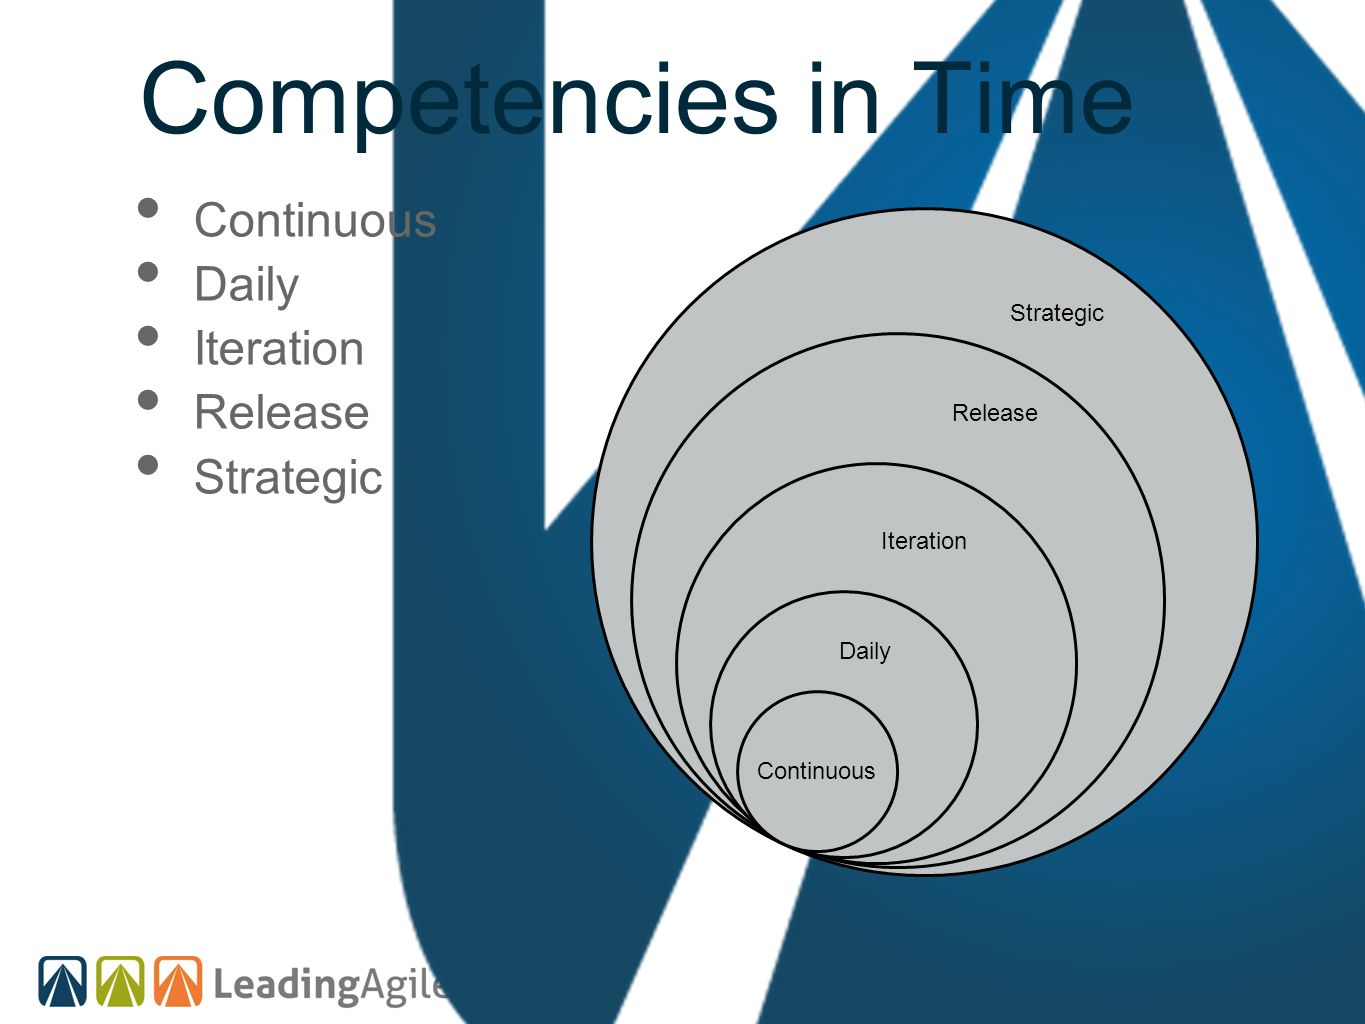 Competencies in Time Continuous Daily Iteration Release Strategic Continuous Strategic Release Iteration Daily